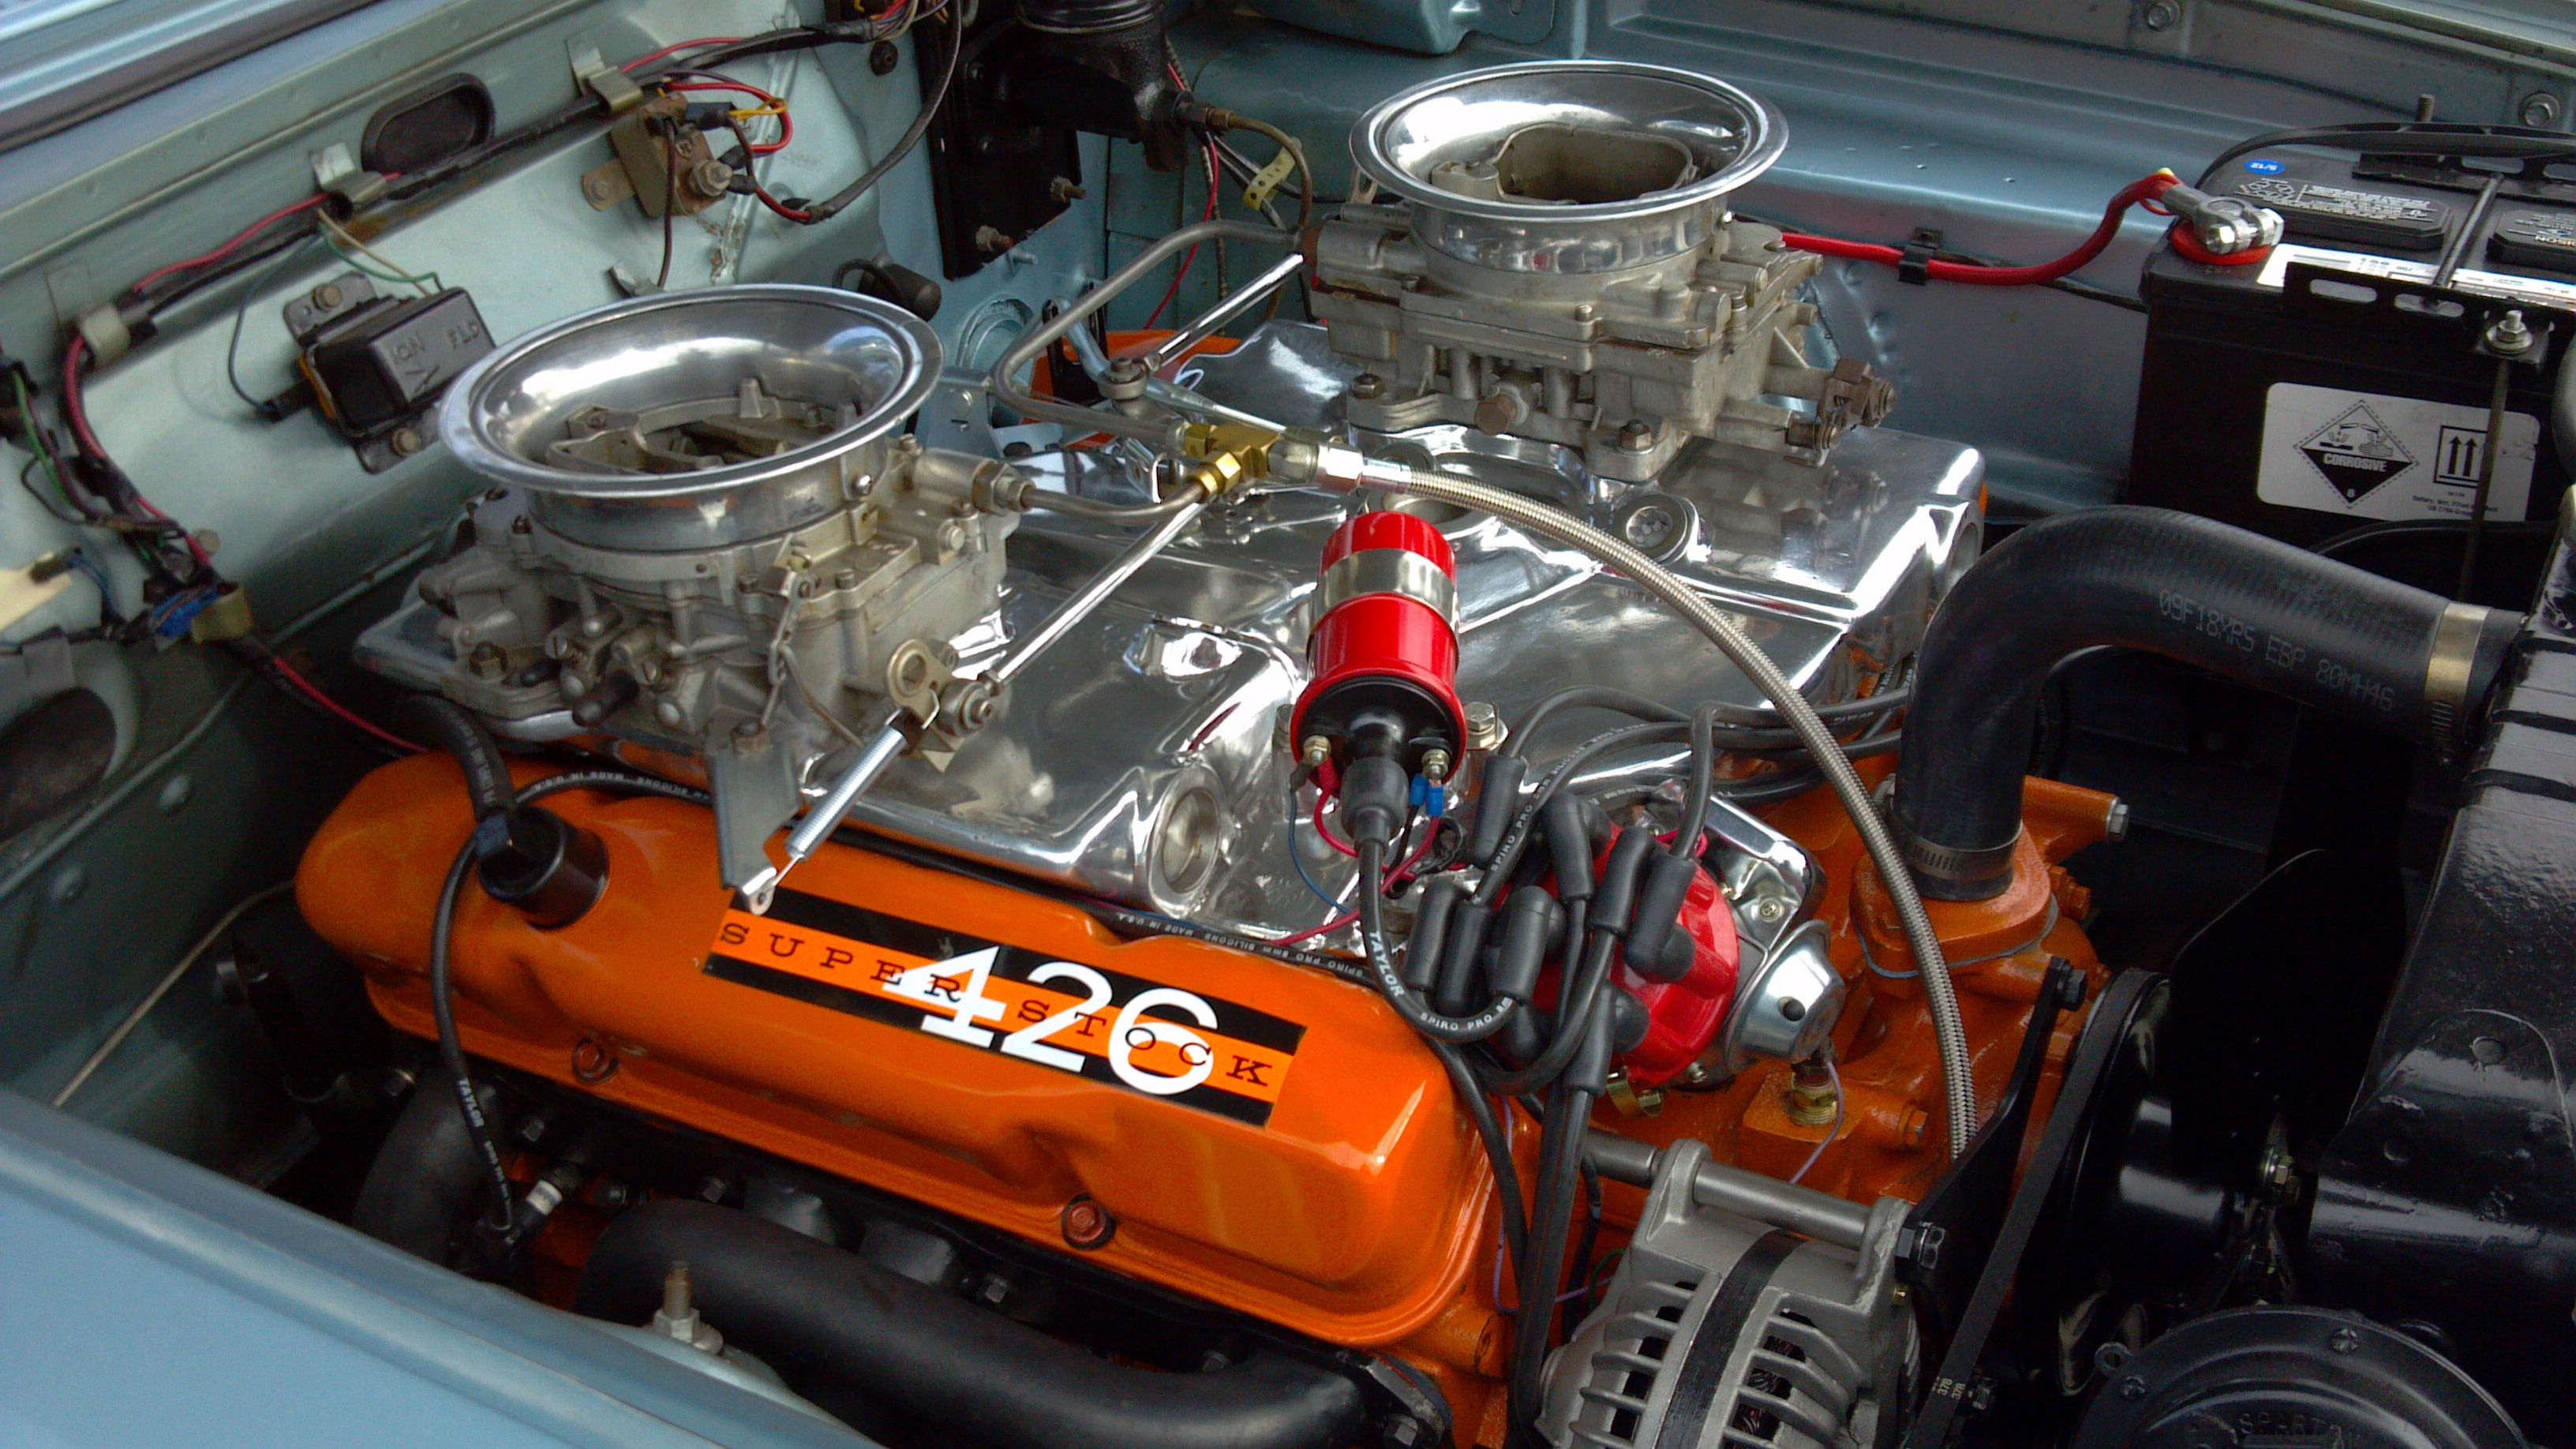 426 Max Wedge With A Cross Ram Intake Raced This Engine In